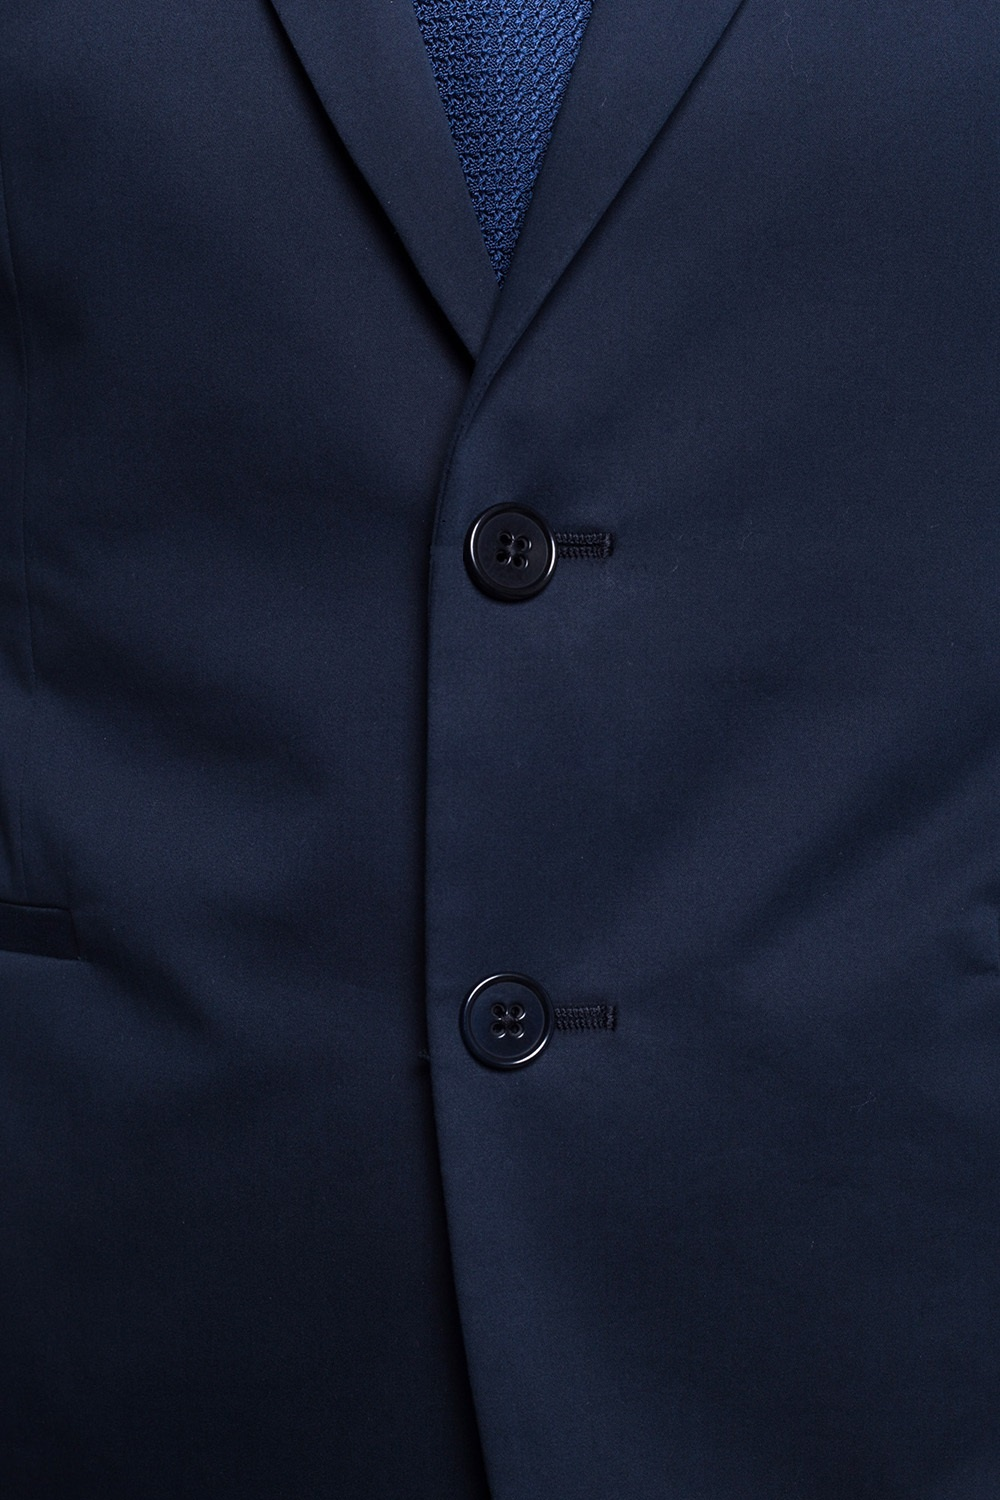 Emporio Armani Cotton suit